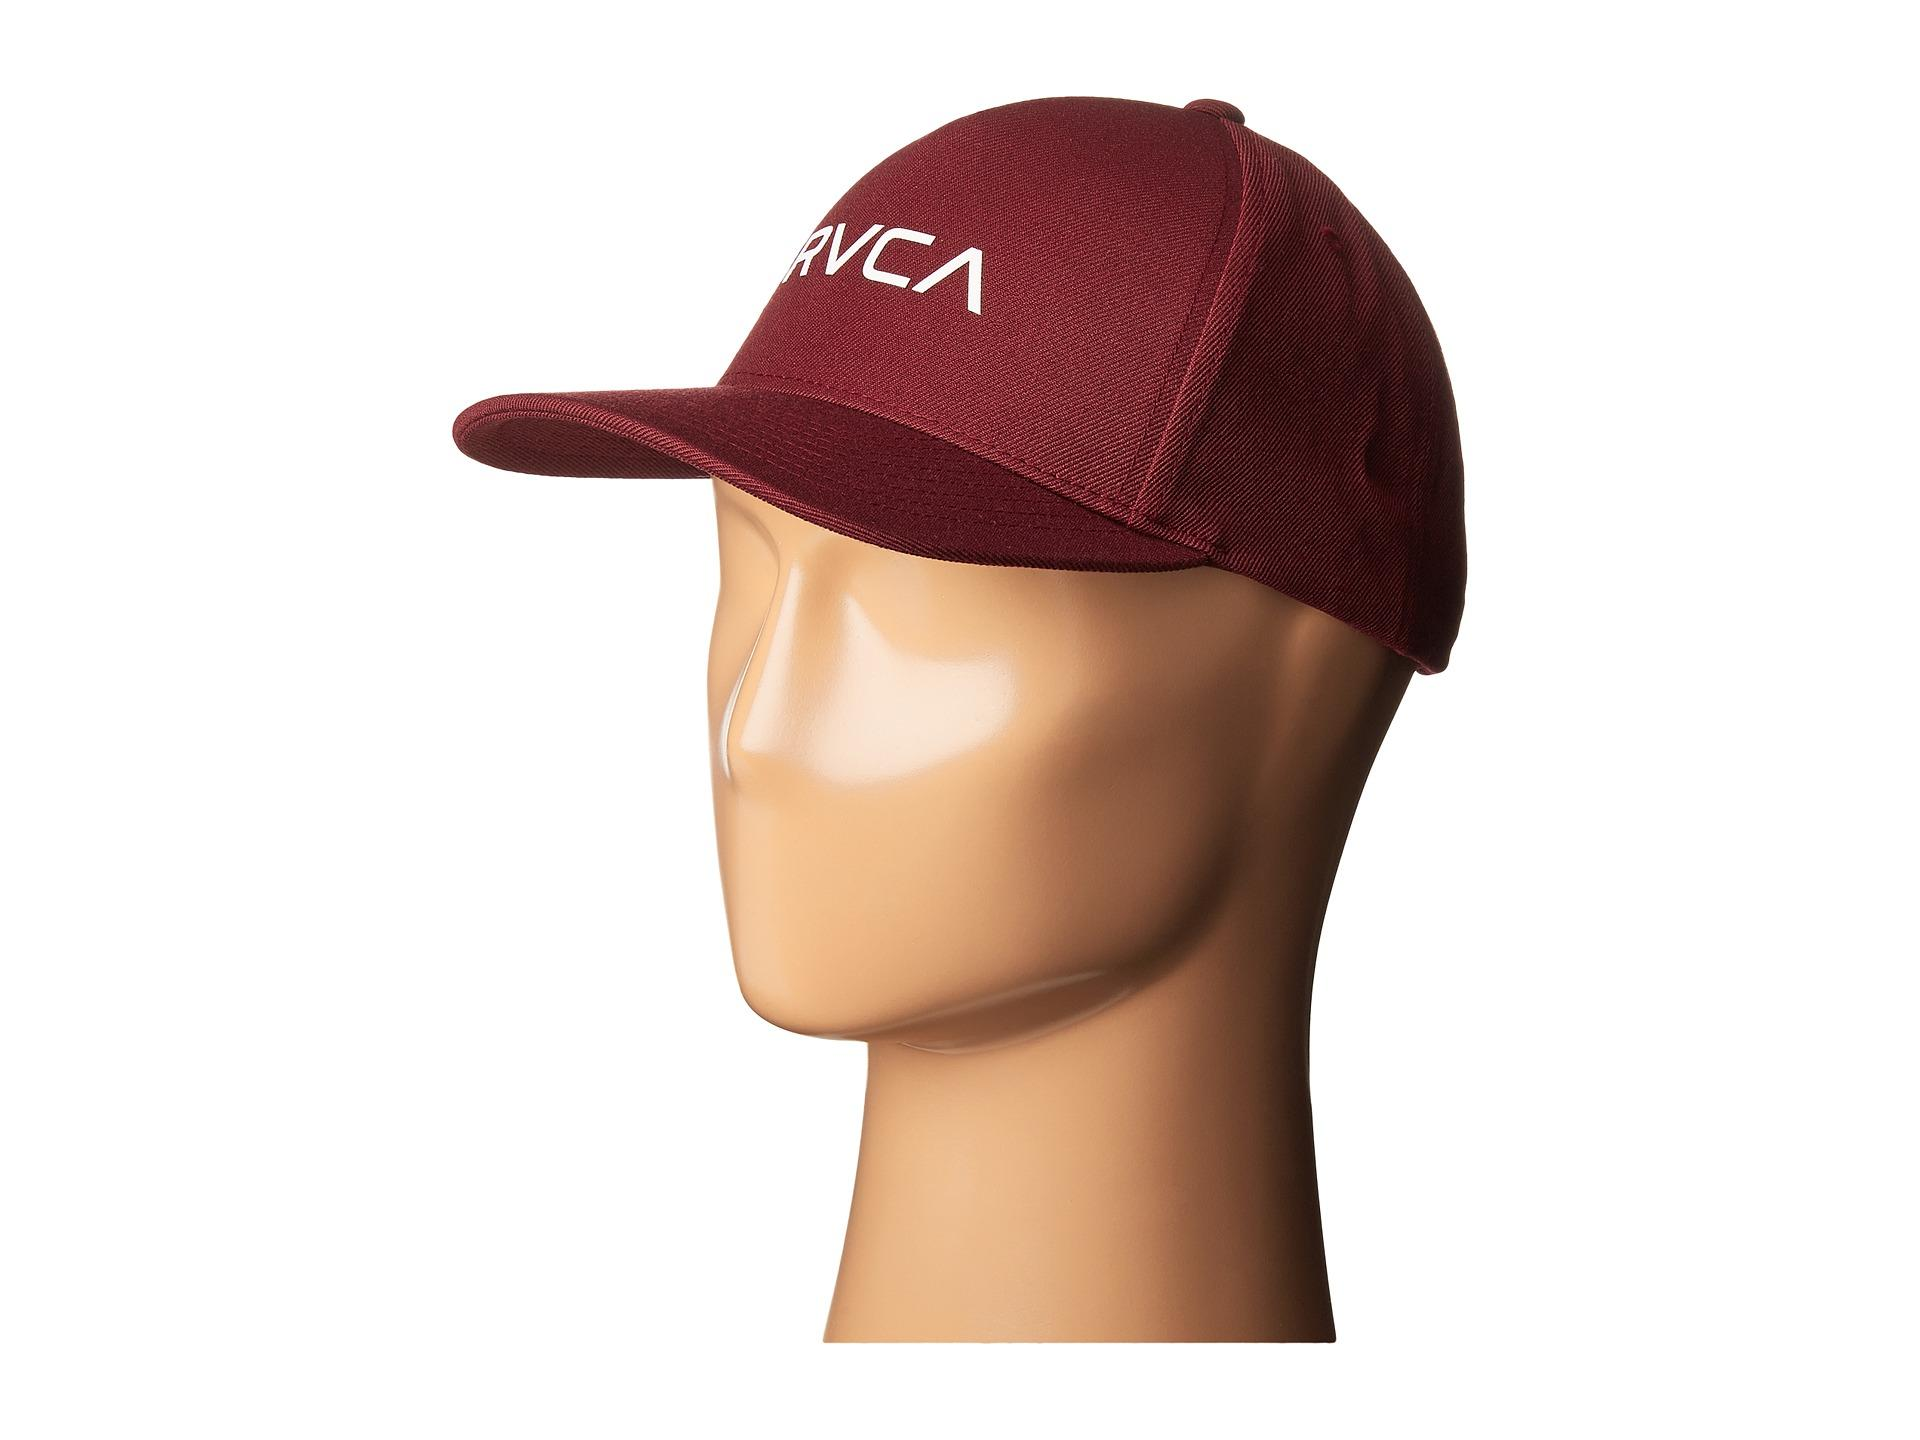 c836e344401f6 ... norway lyst rvca curved bill snapback in red for men 571a1 f626b